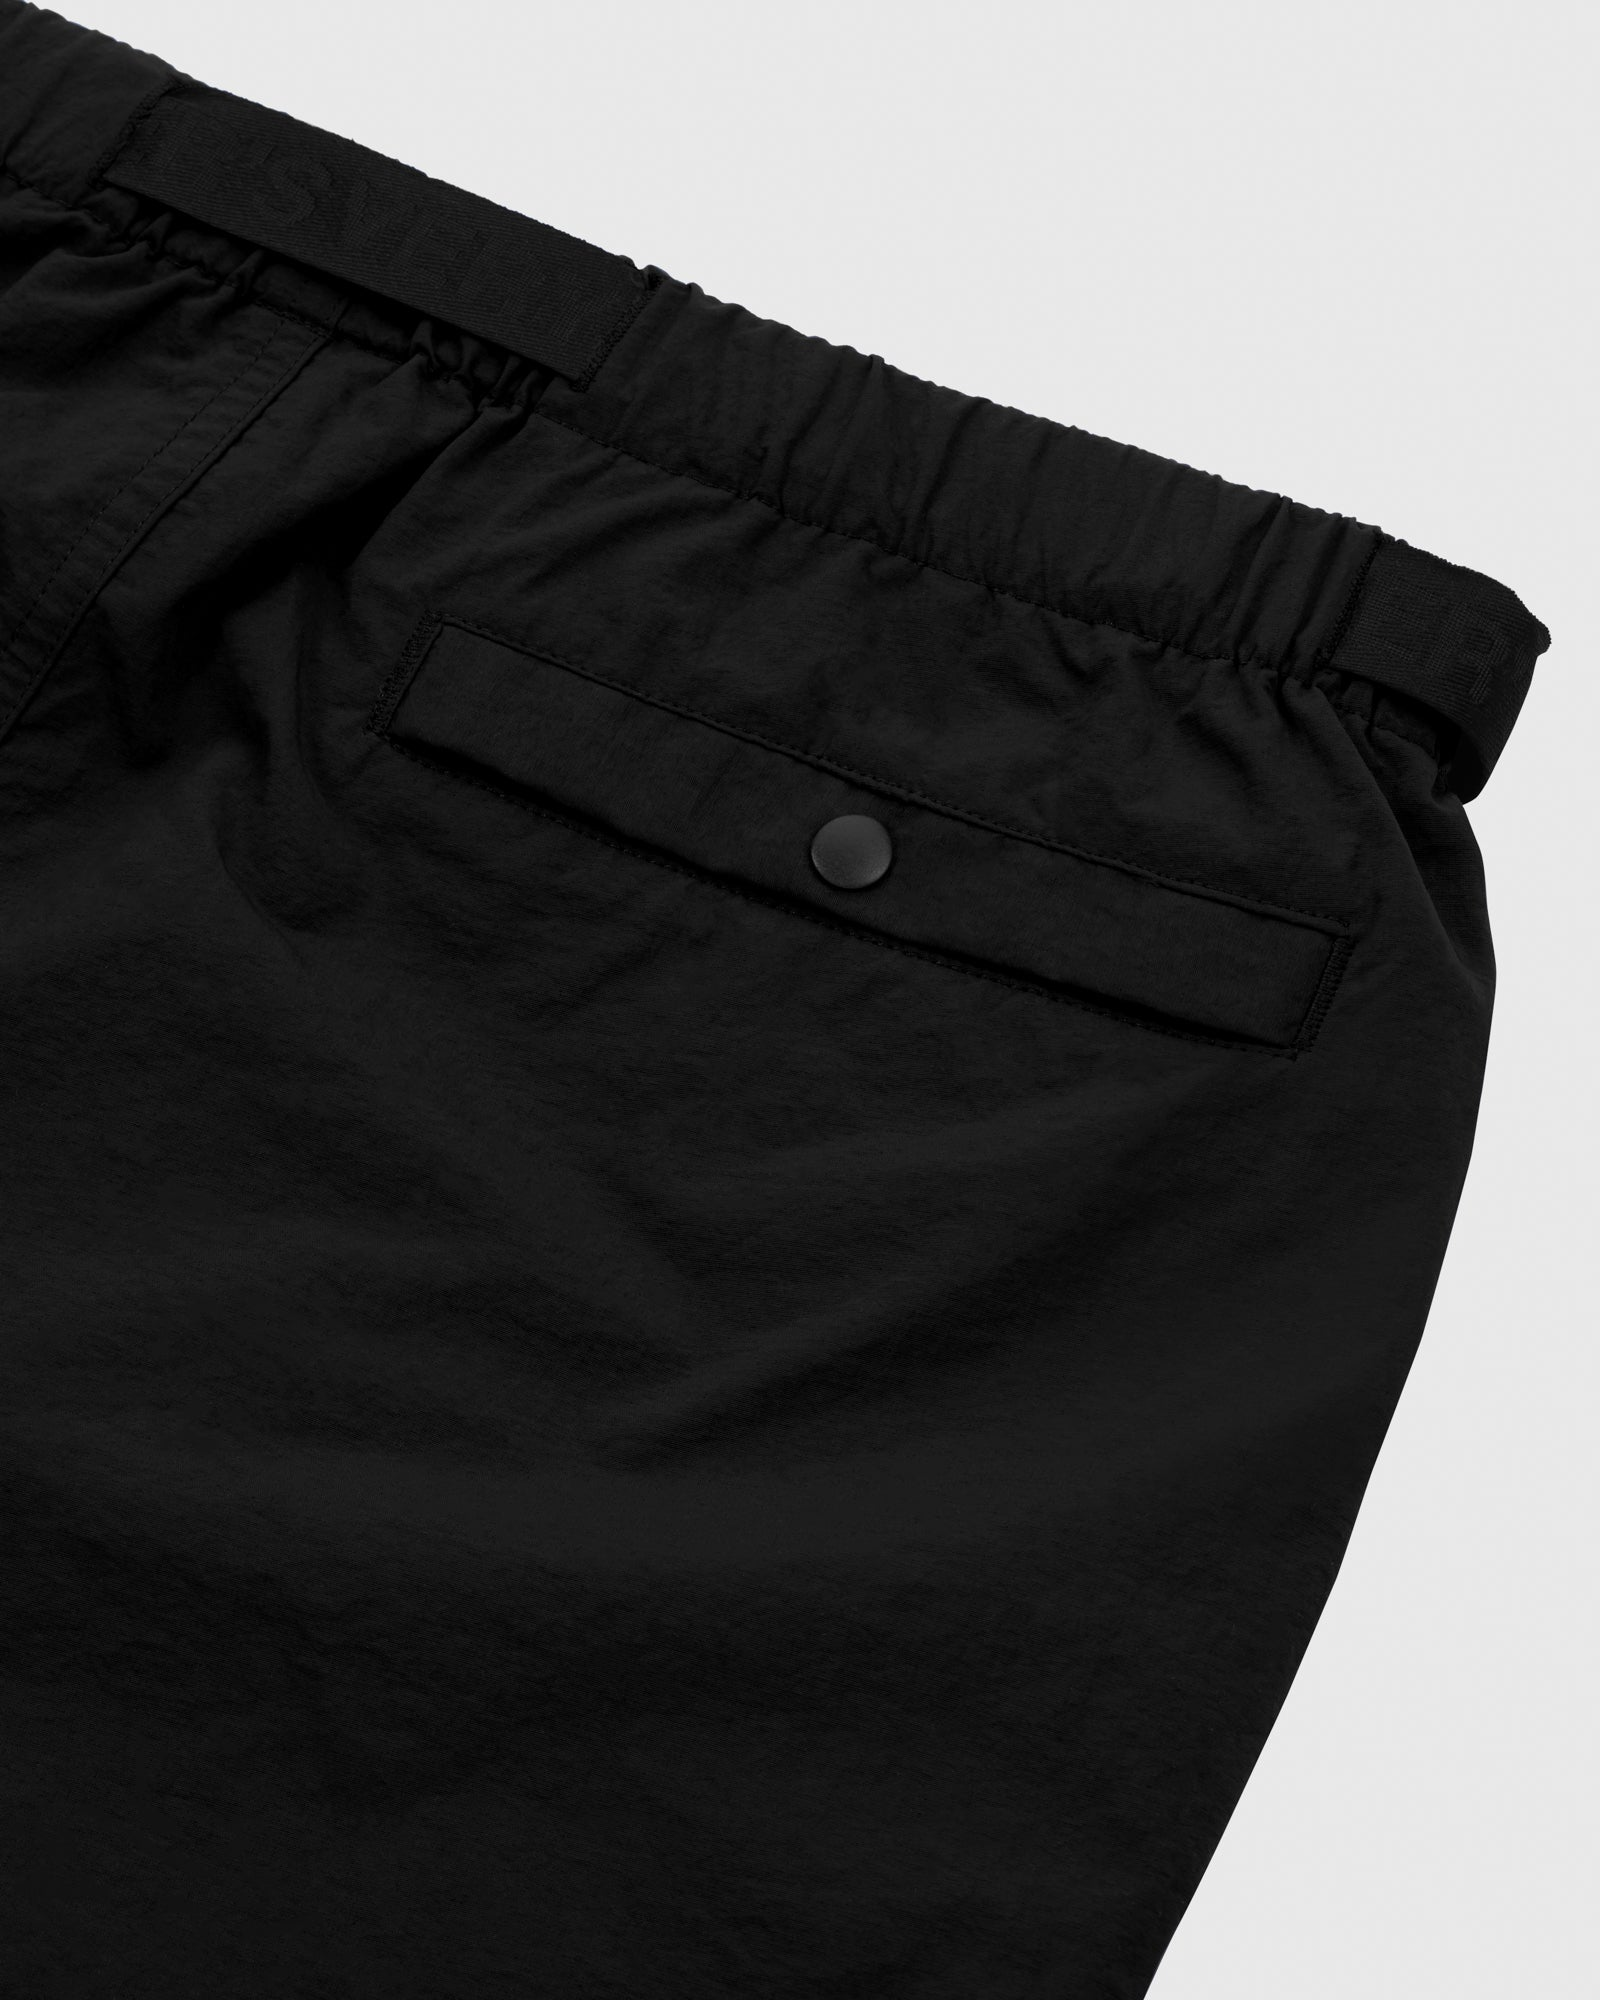 OVO NYLON CAMP SHORT - BLACK